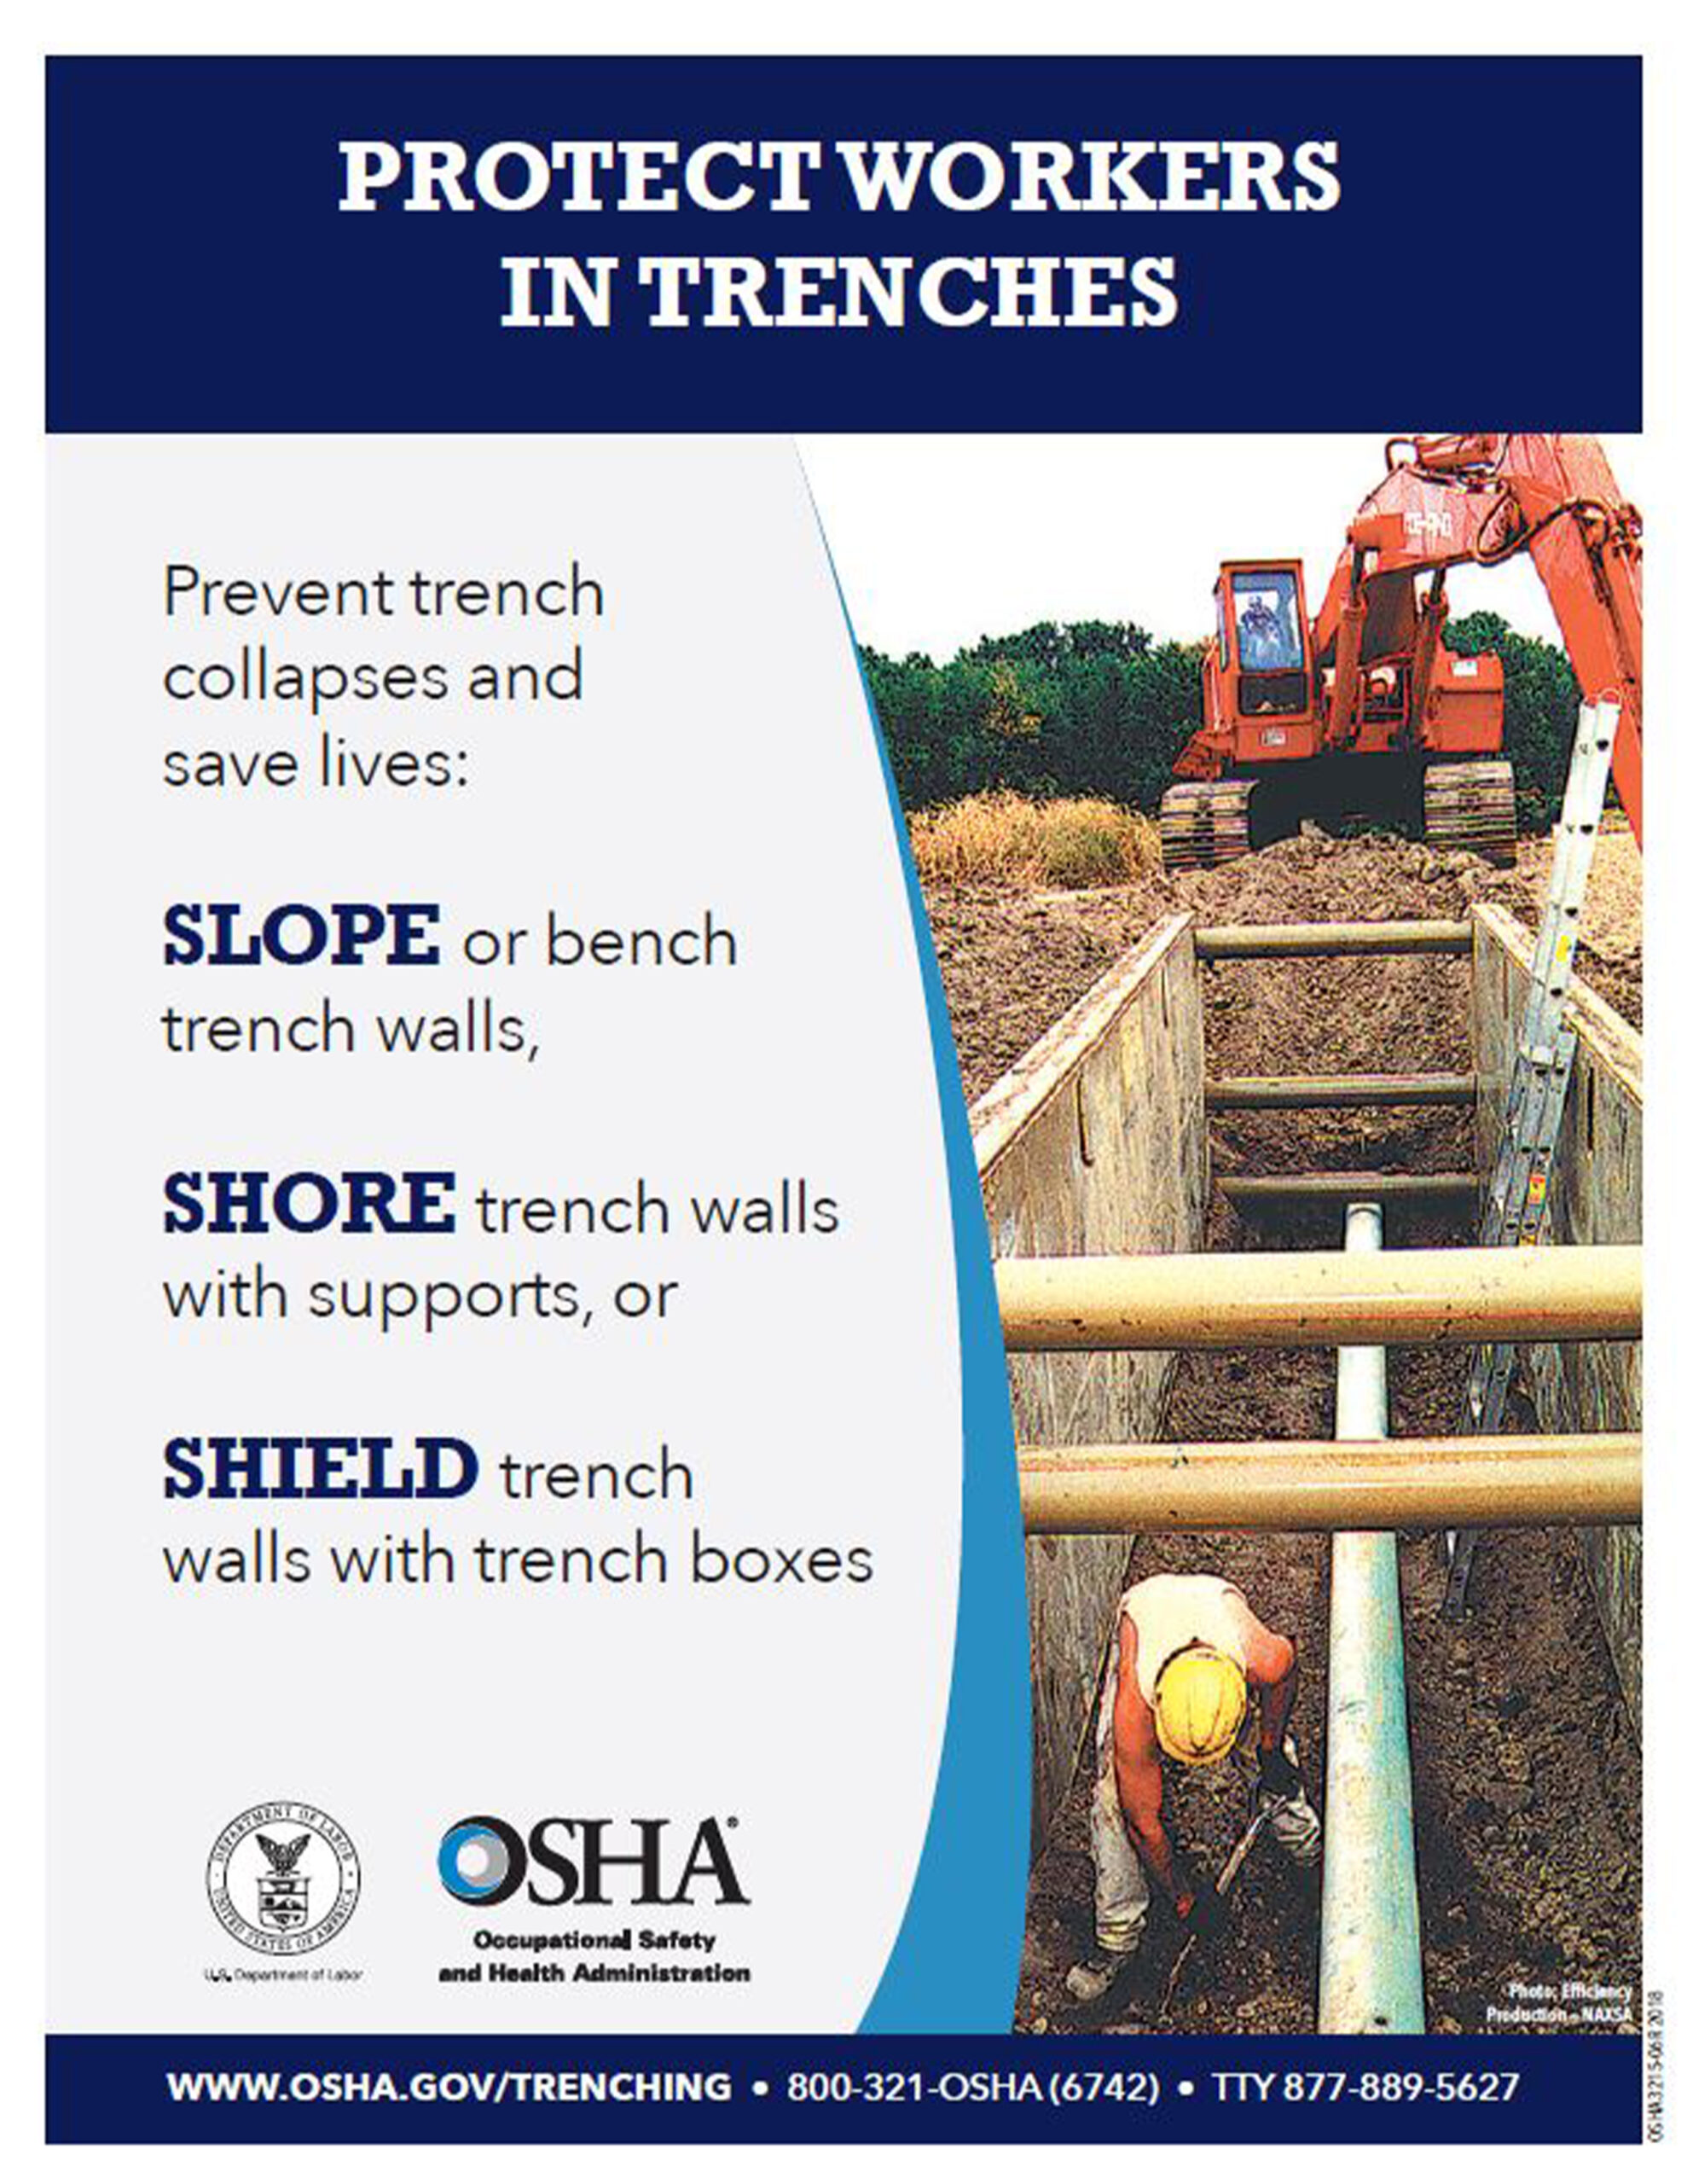 Protect workers in trenches